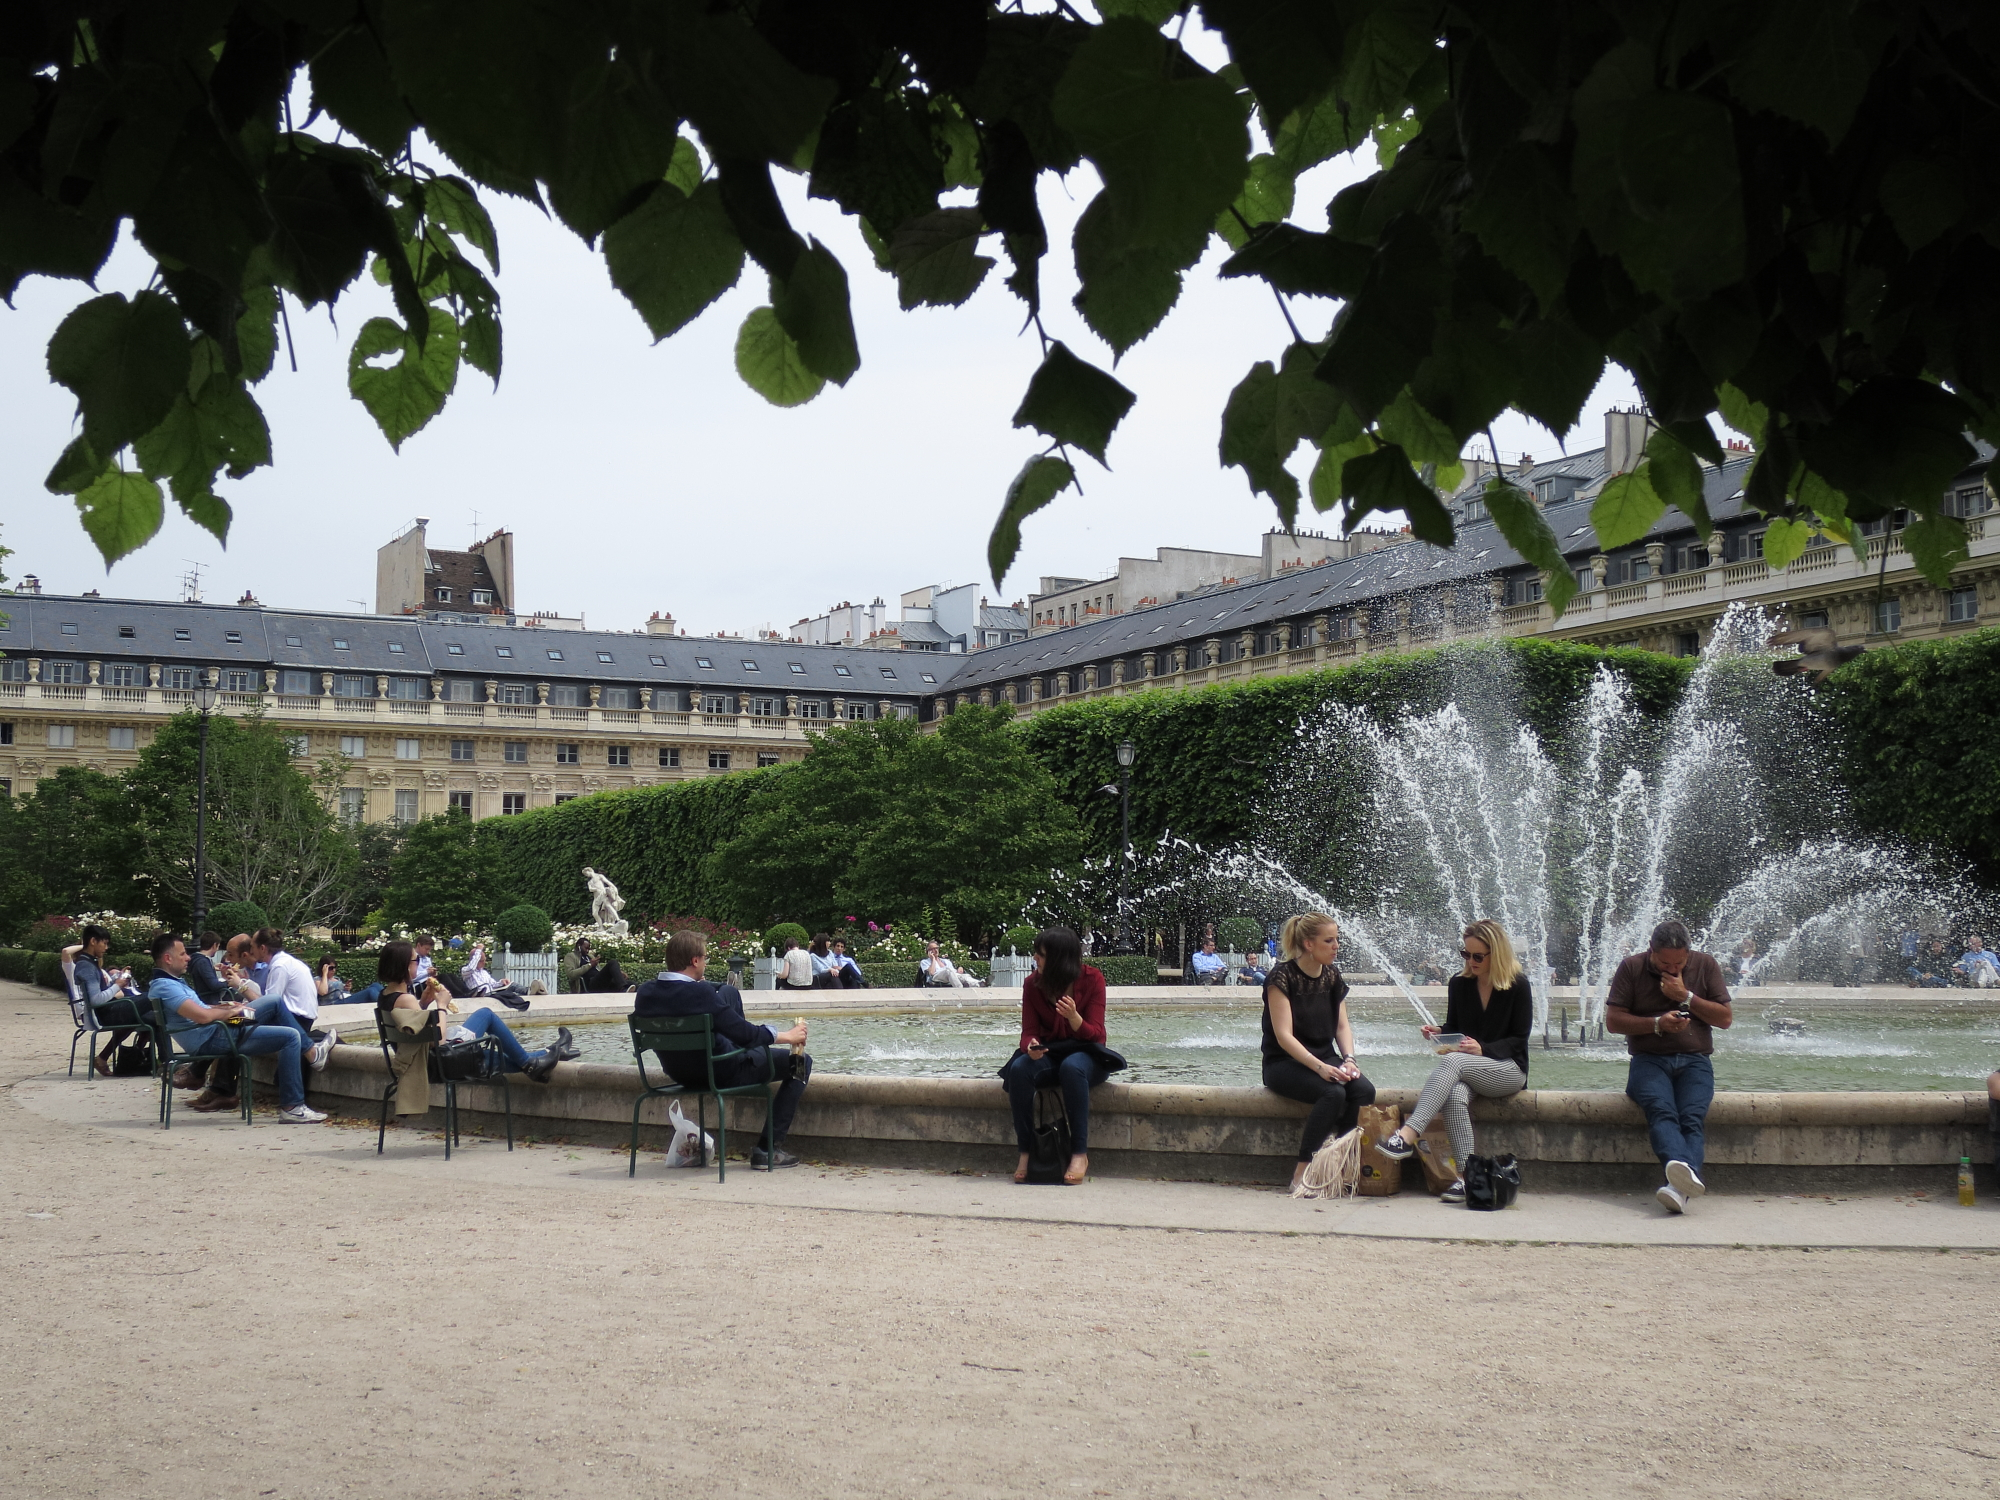 The garden of the Palais Royal